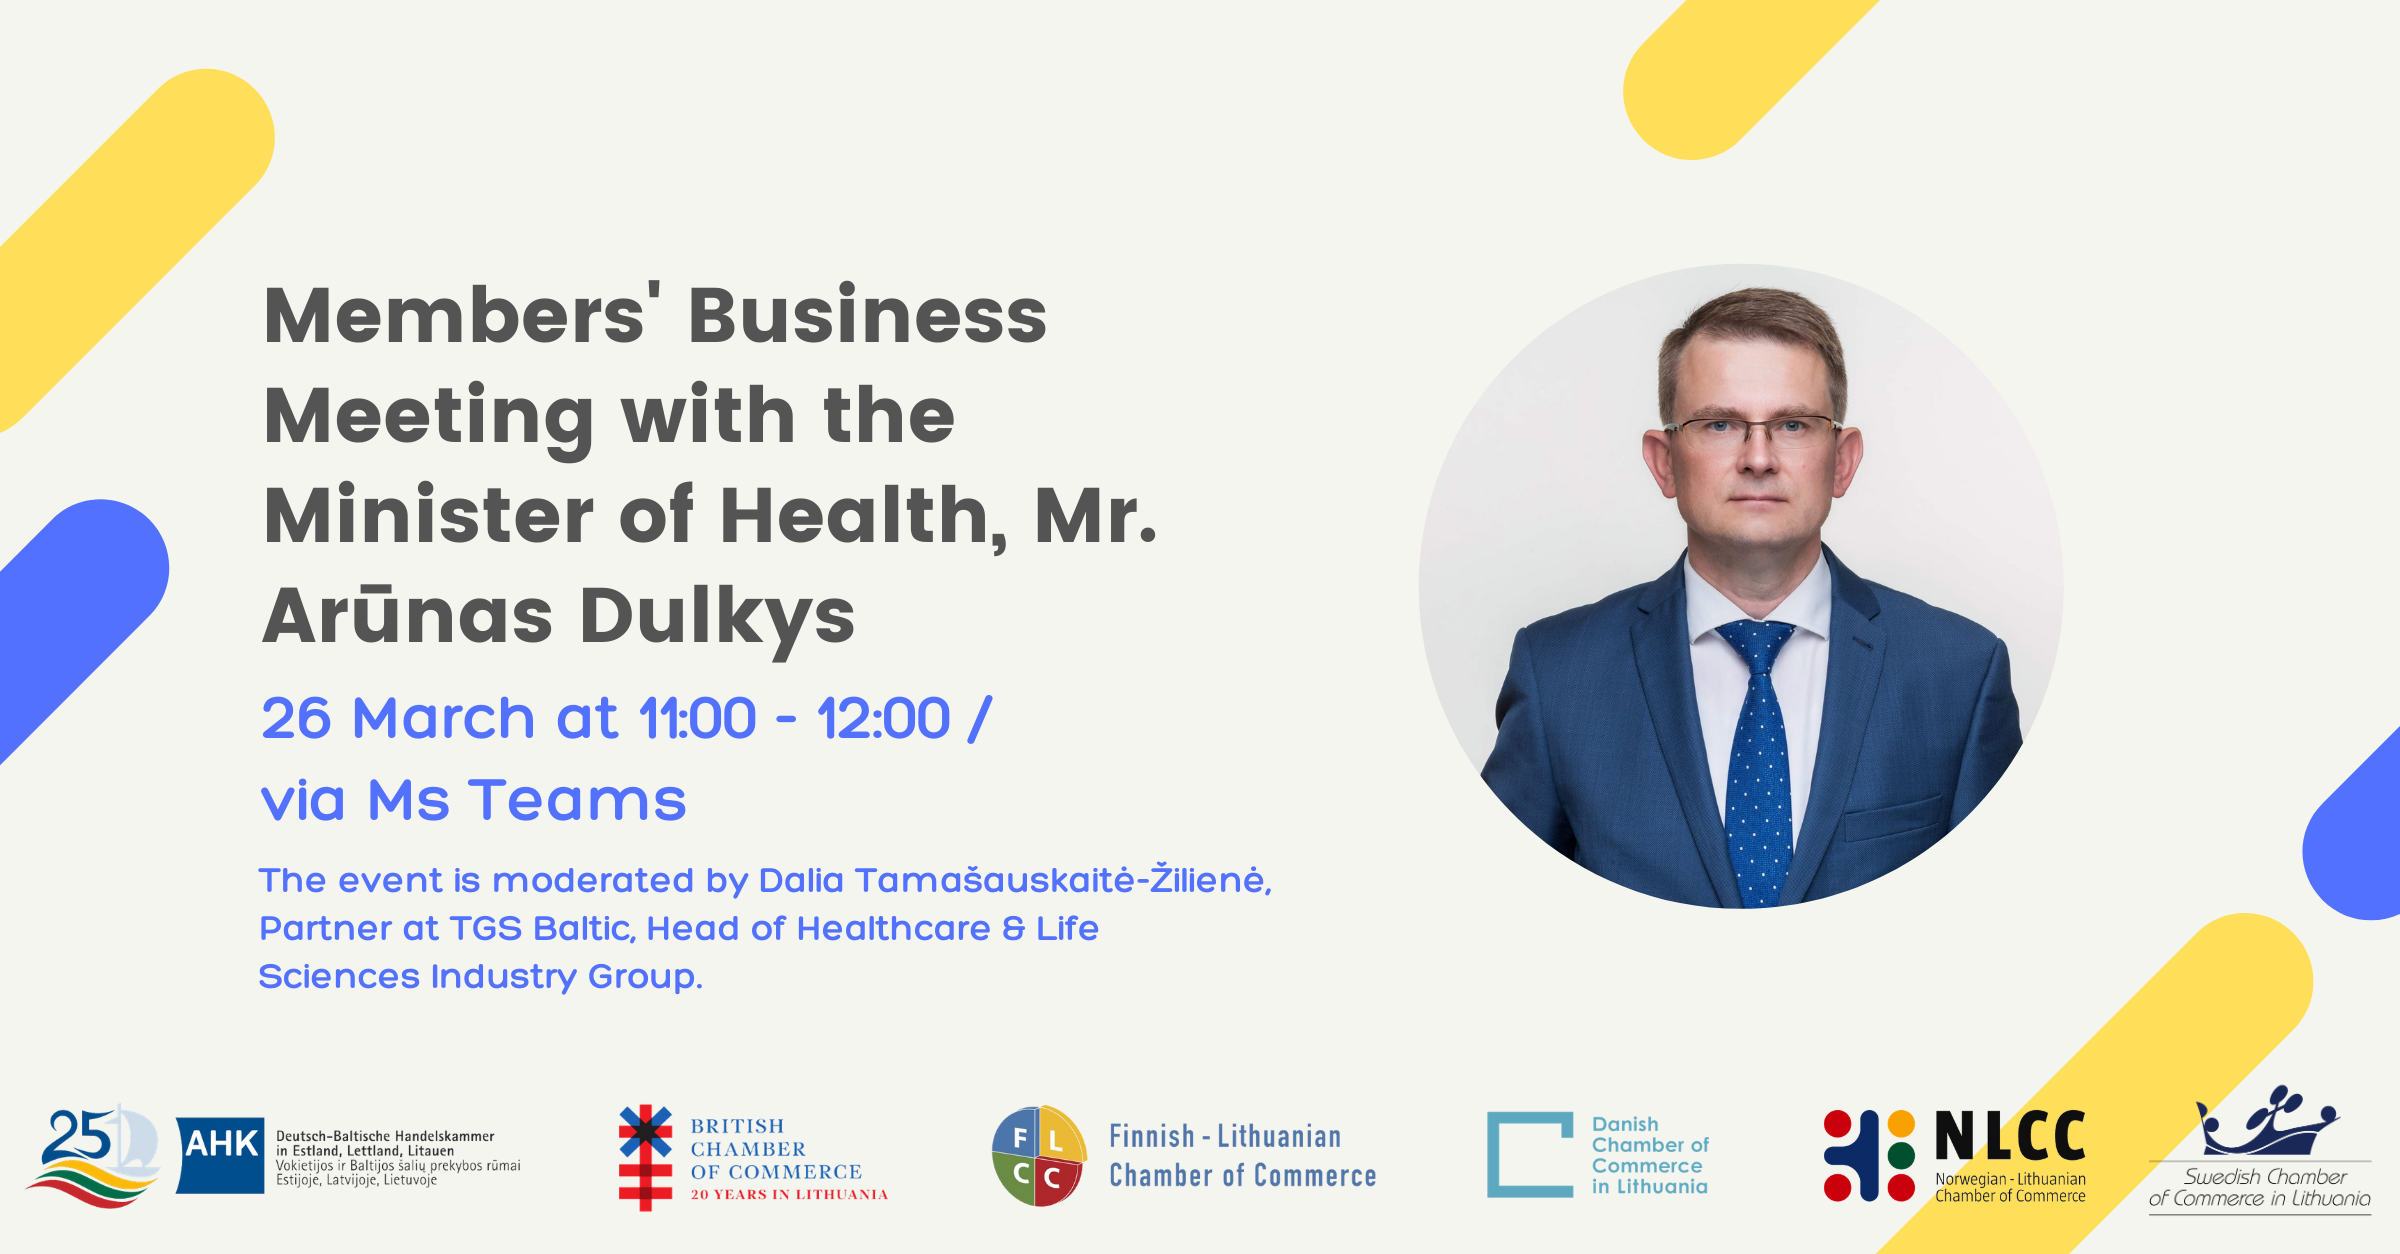 Members' Business Meeting with Minister of Health, Mr. Arūnas Dulkys